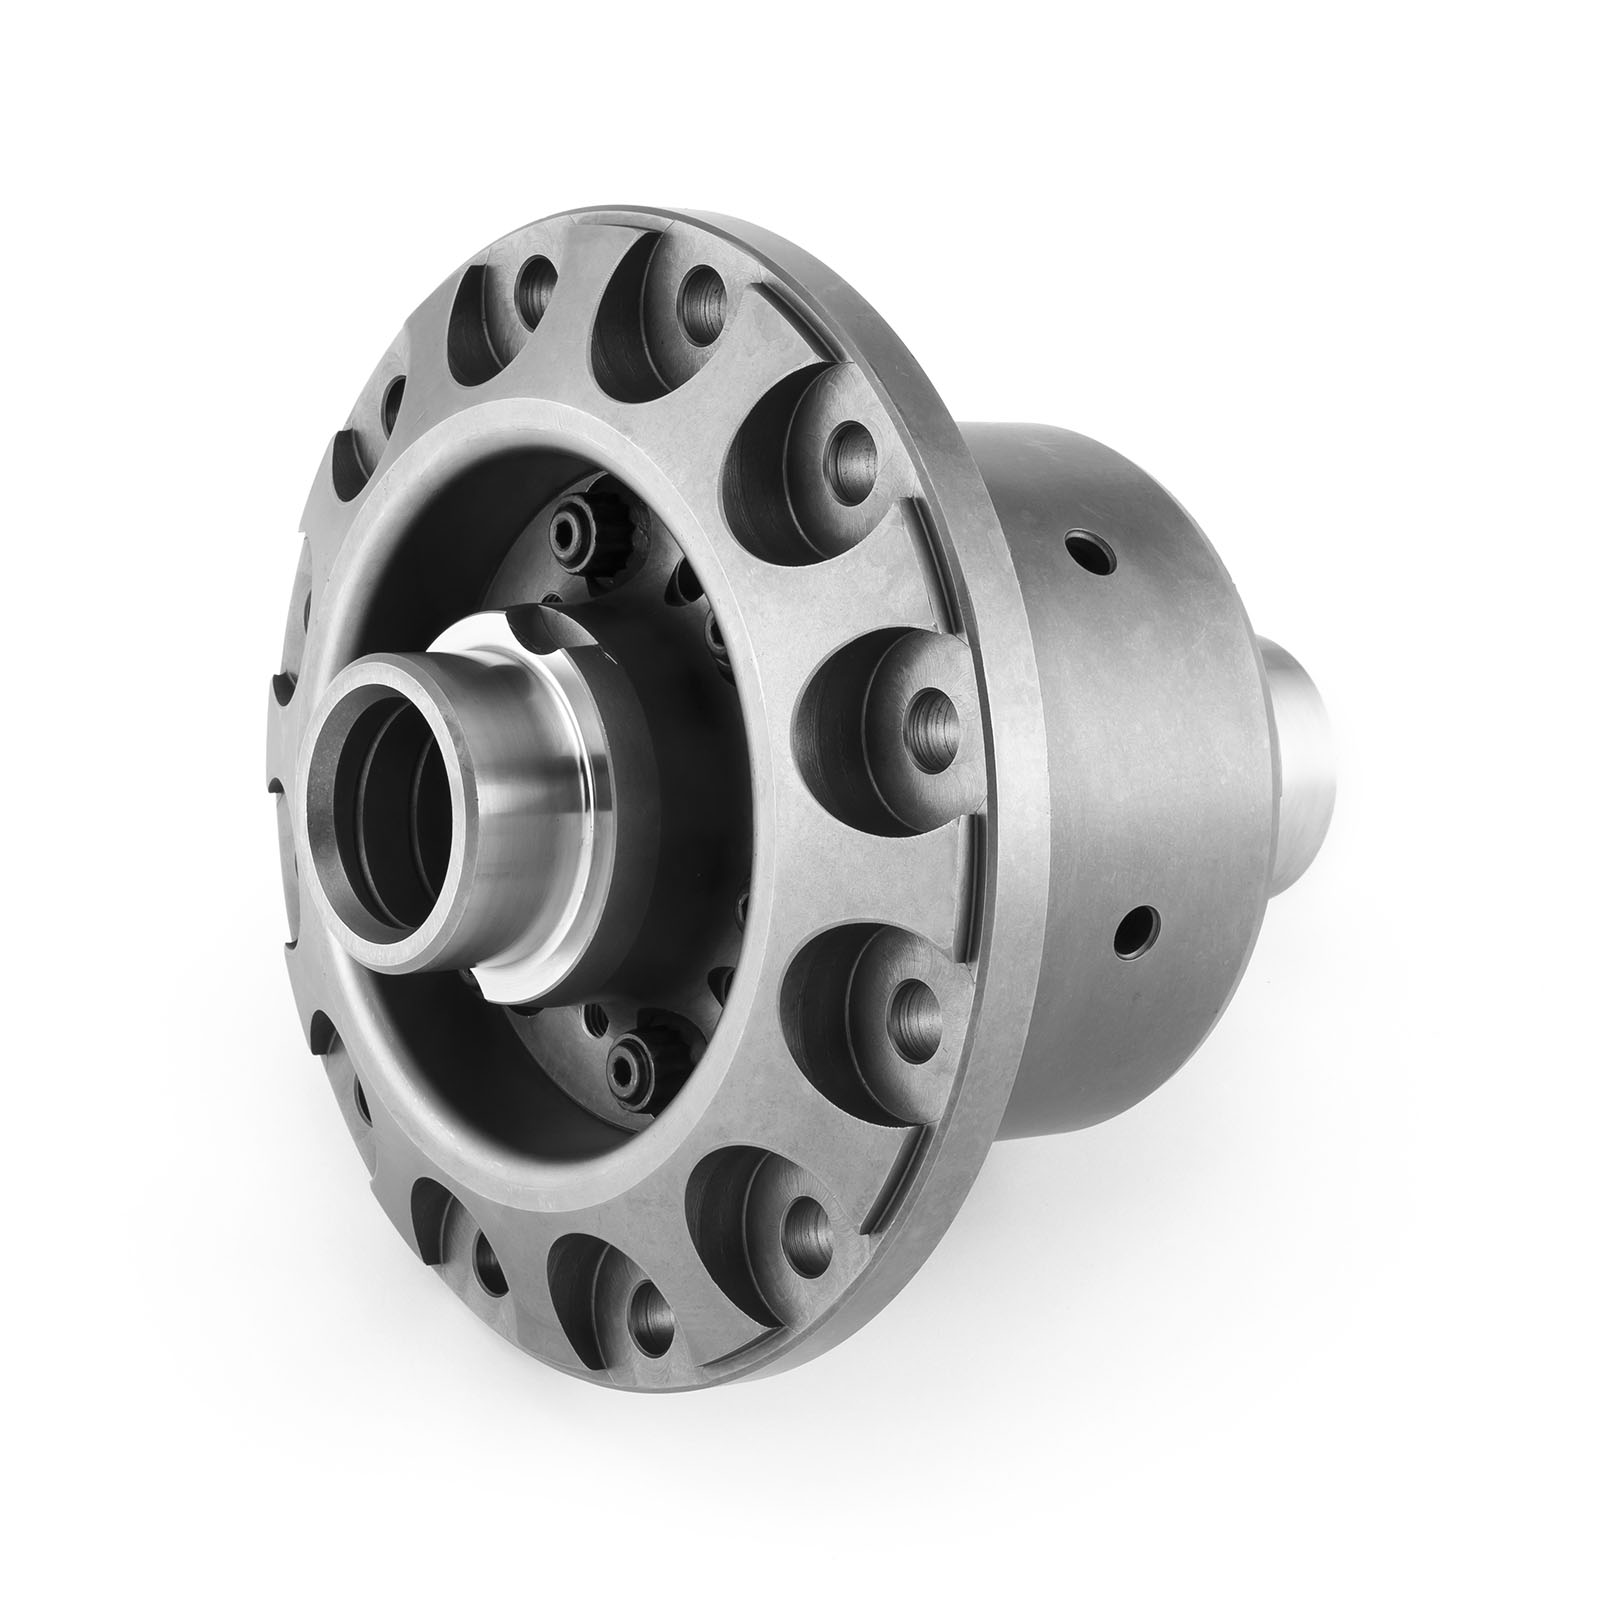 DANA 60 35 Spline 4.56 and Up TorqueWorm LSD Limited Slip Differential